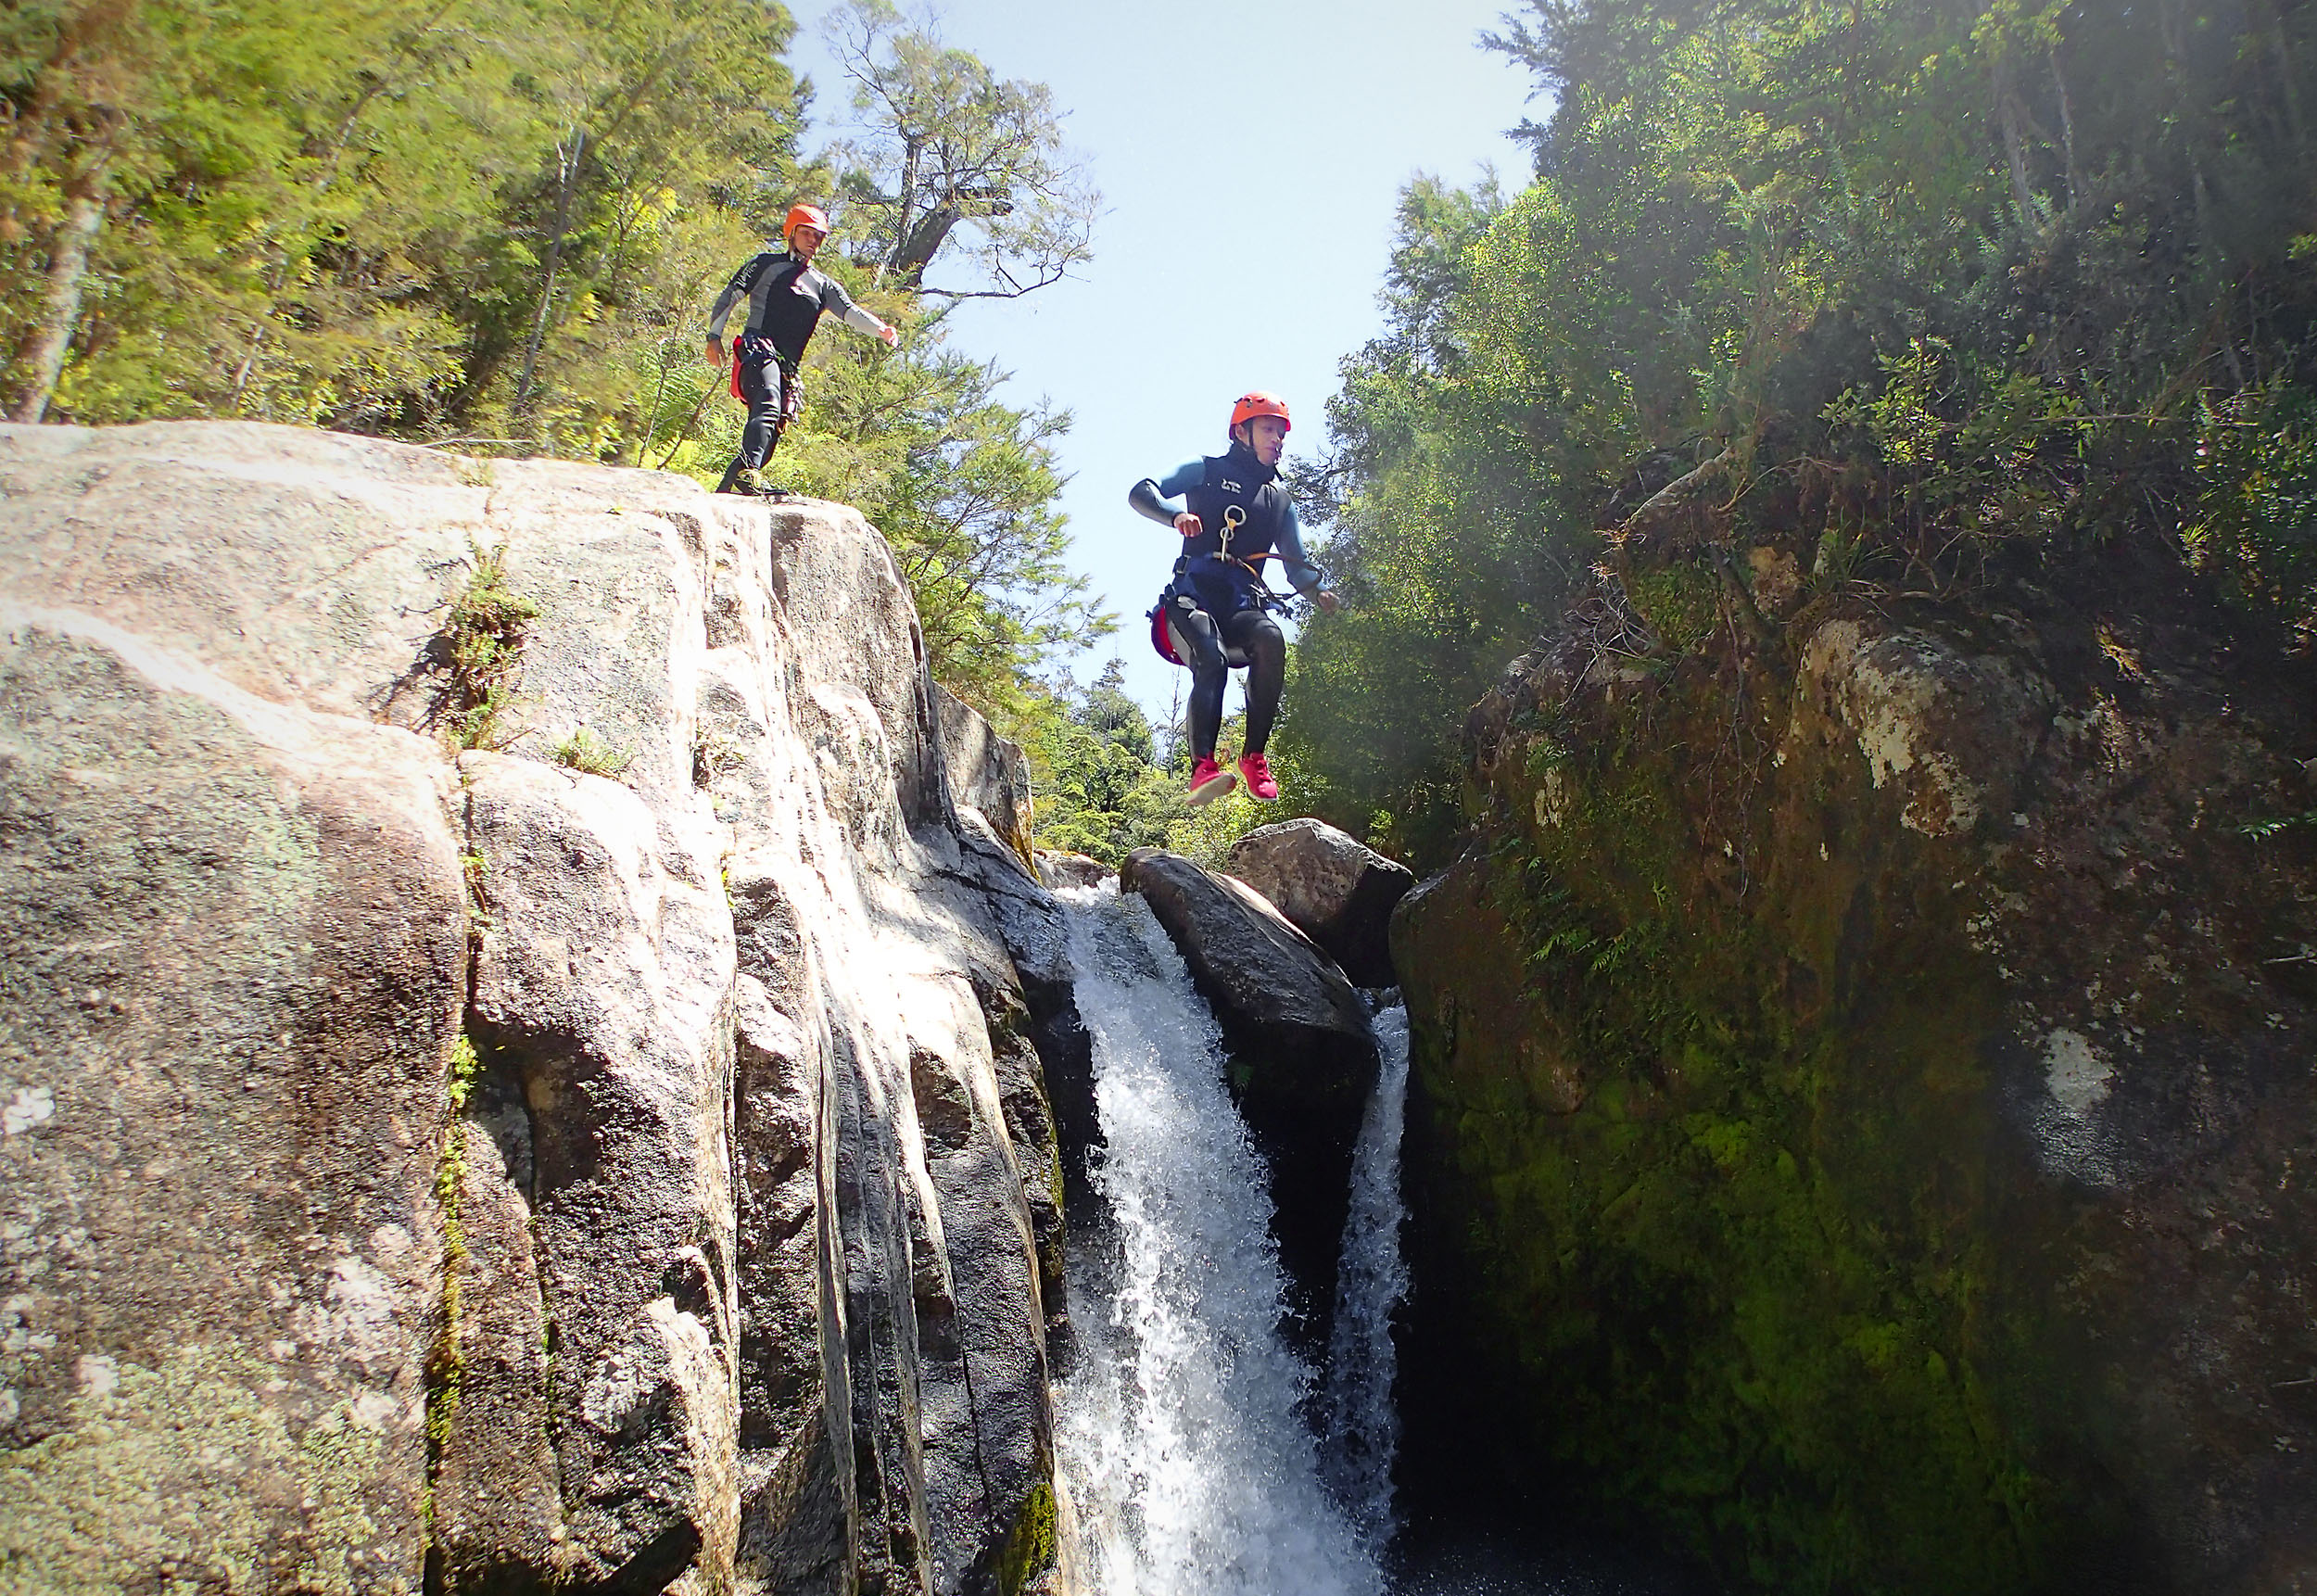 Two canyoneers jumping off a rock by a waterfall, one mid air and the other about to jump at Abel Tasman National Park, New Zealand